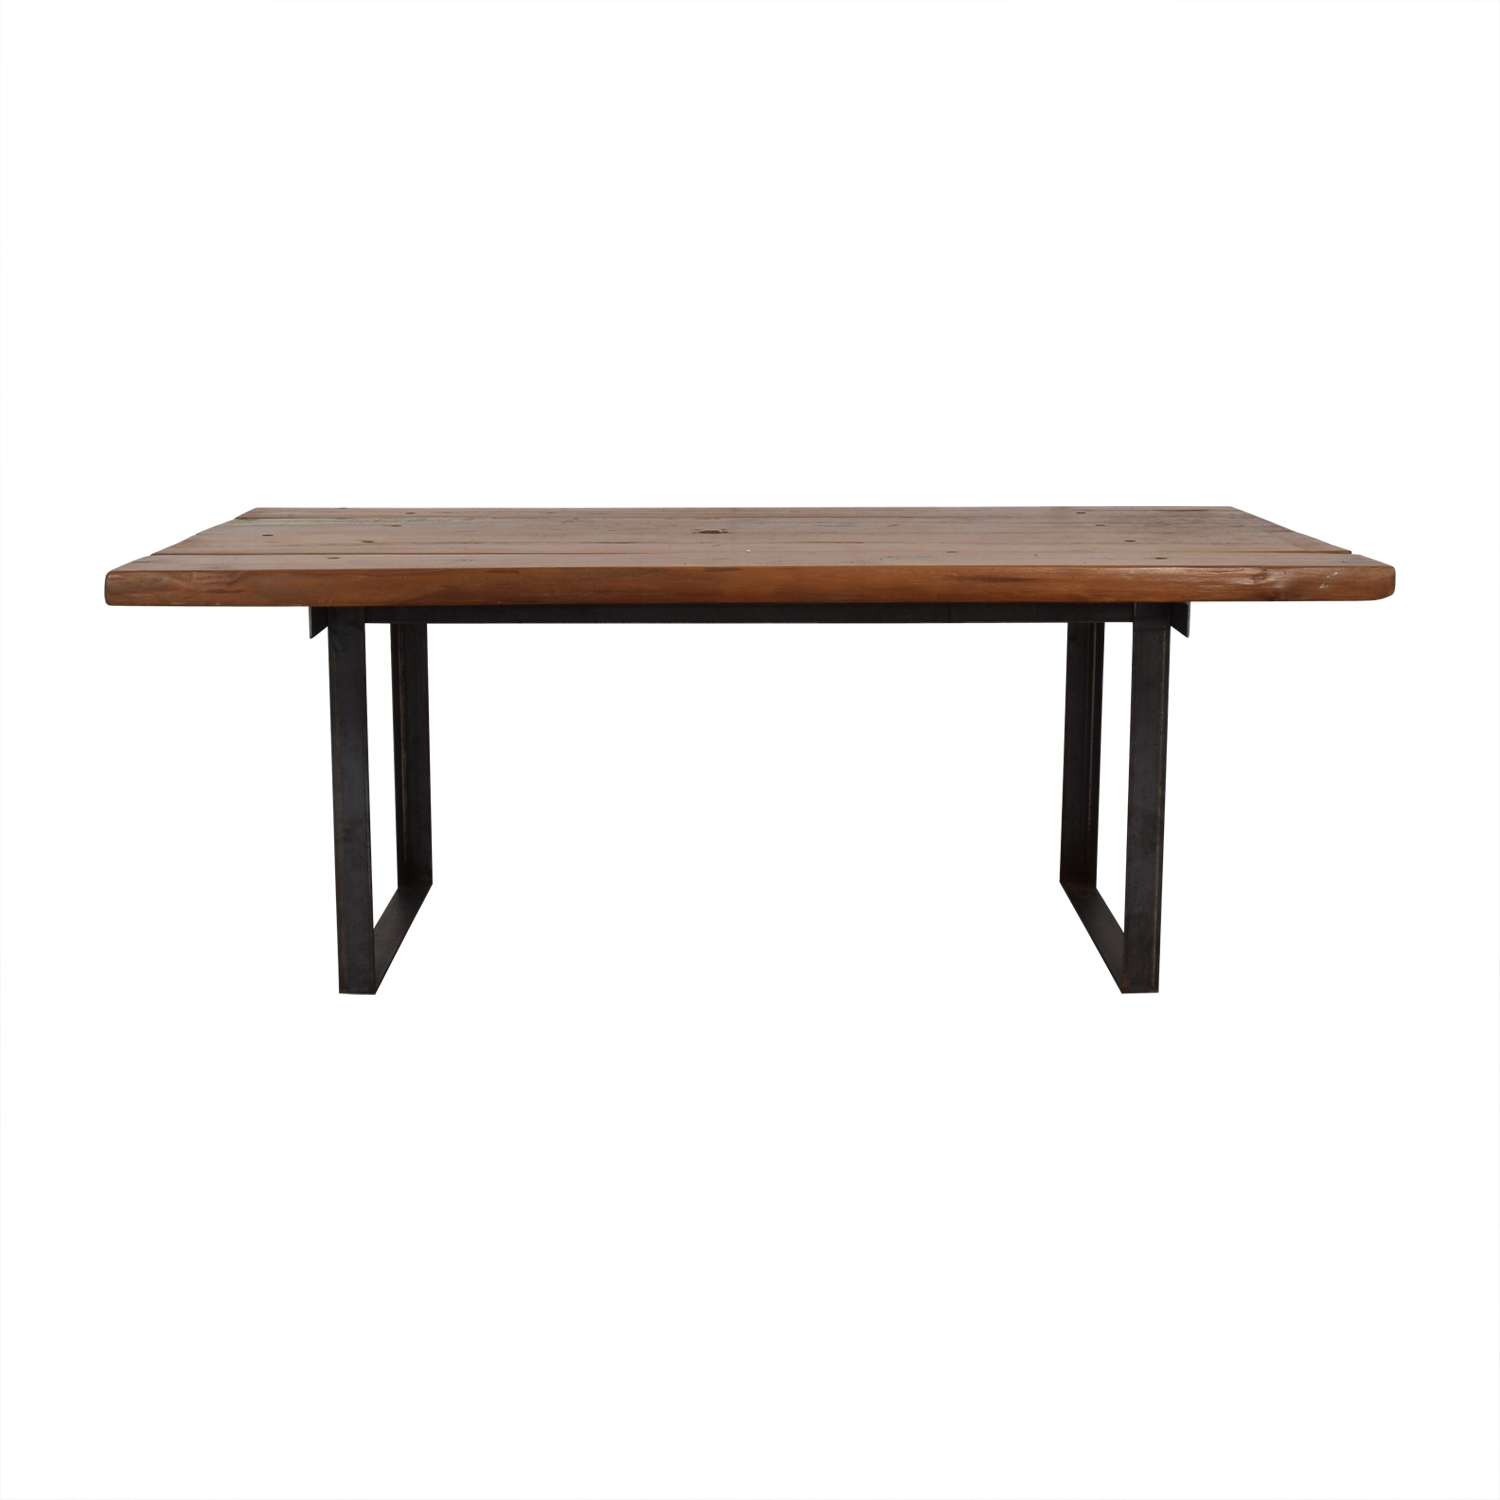 buy  Pascal Benichou Industrial Rustic Wood Dining Table online